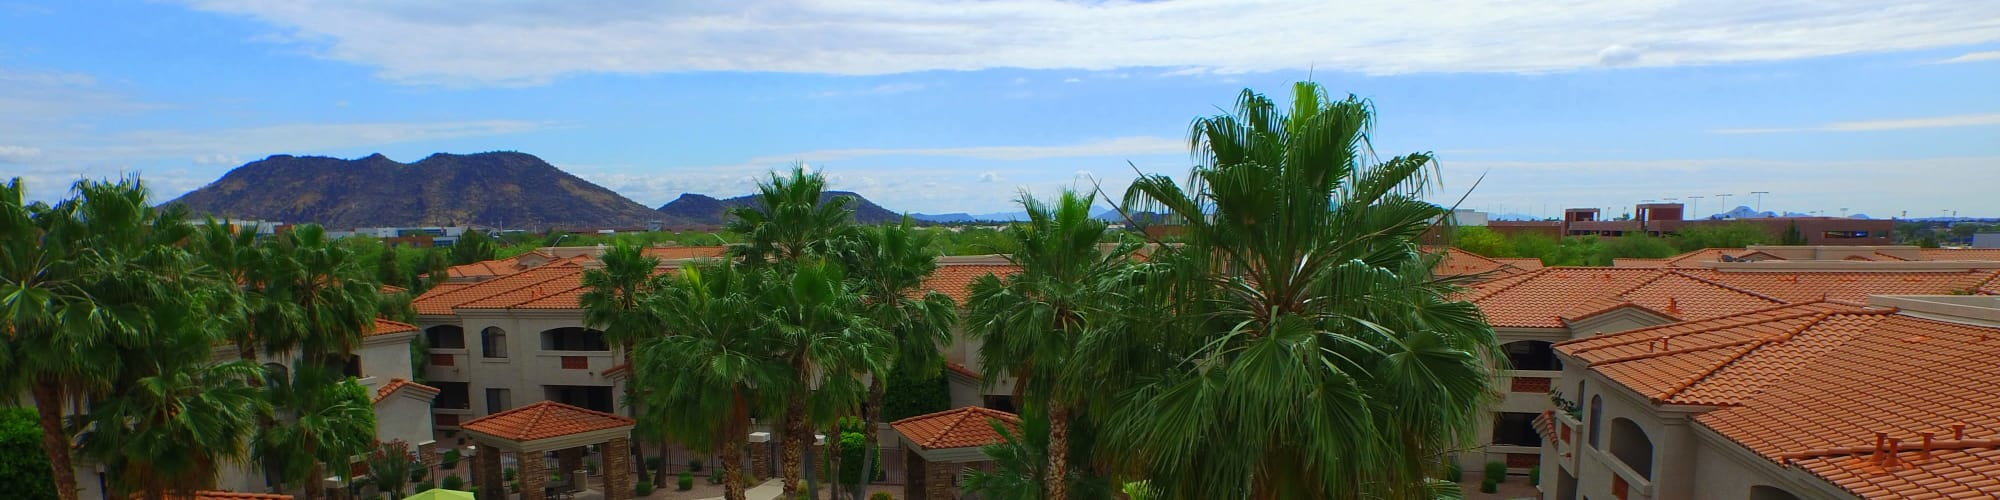 Apply to live at San Prado in Glendale, Arizona